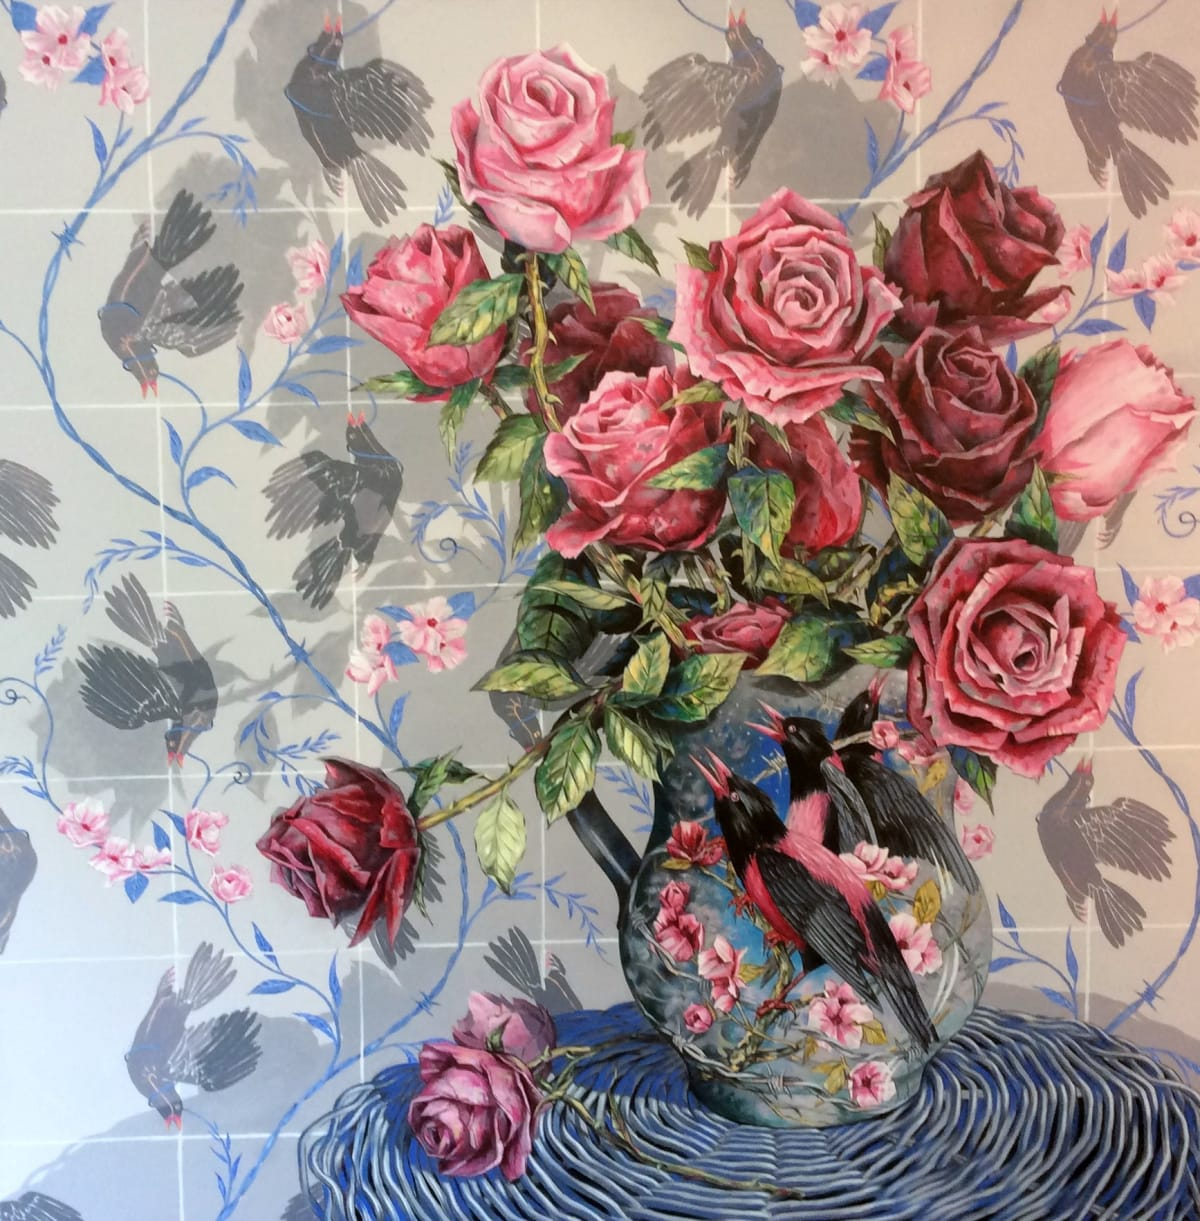 John Grice, Bed of Roses, 2019